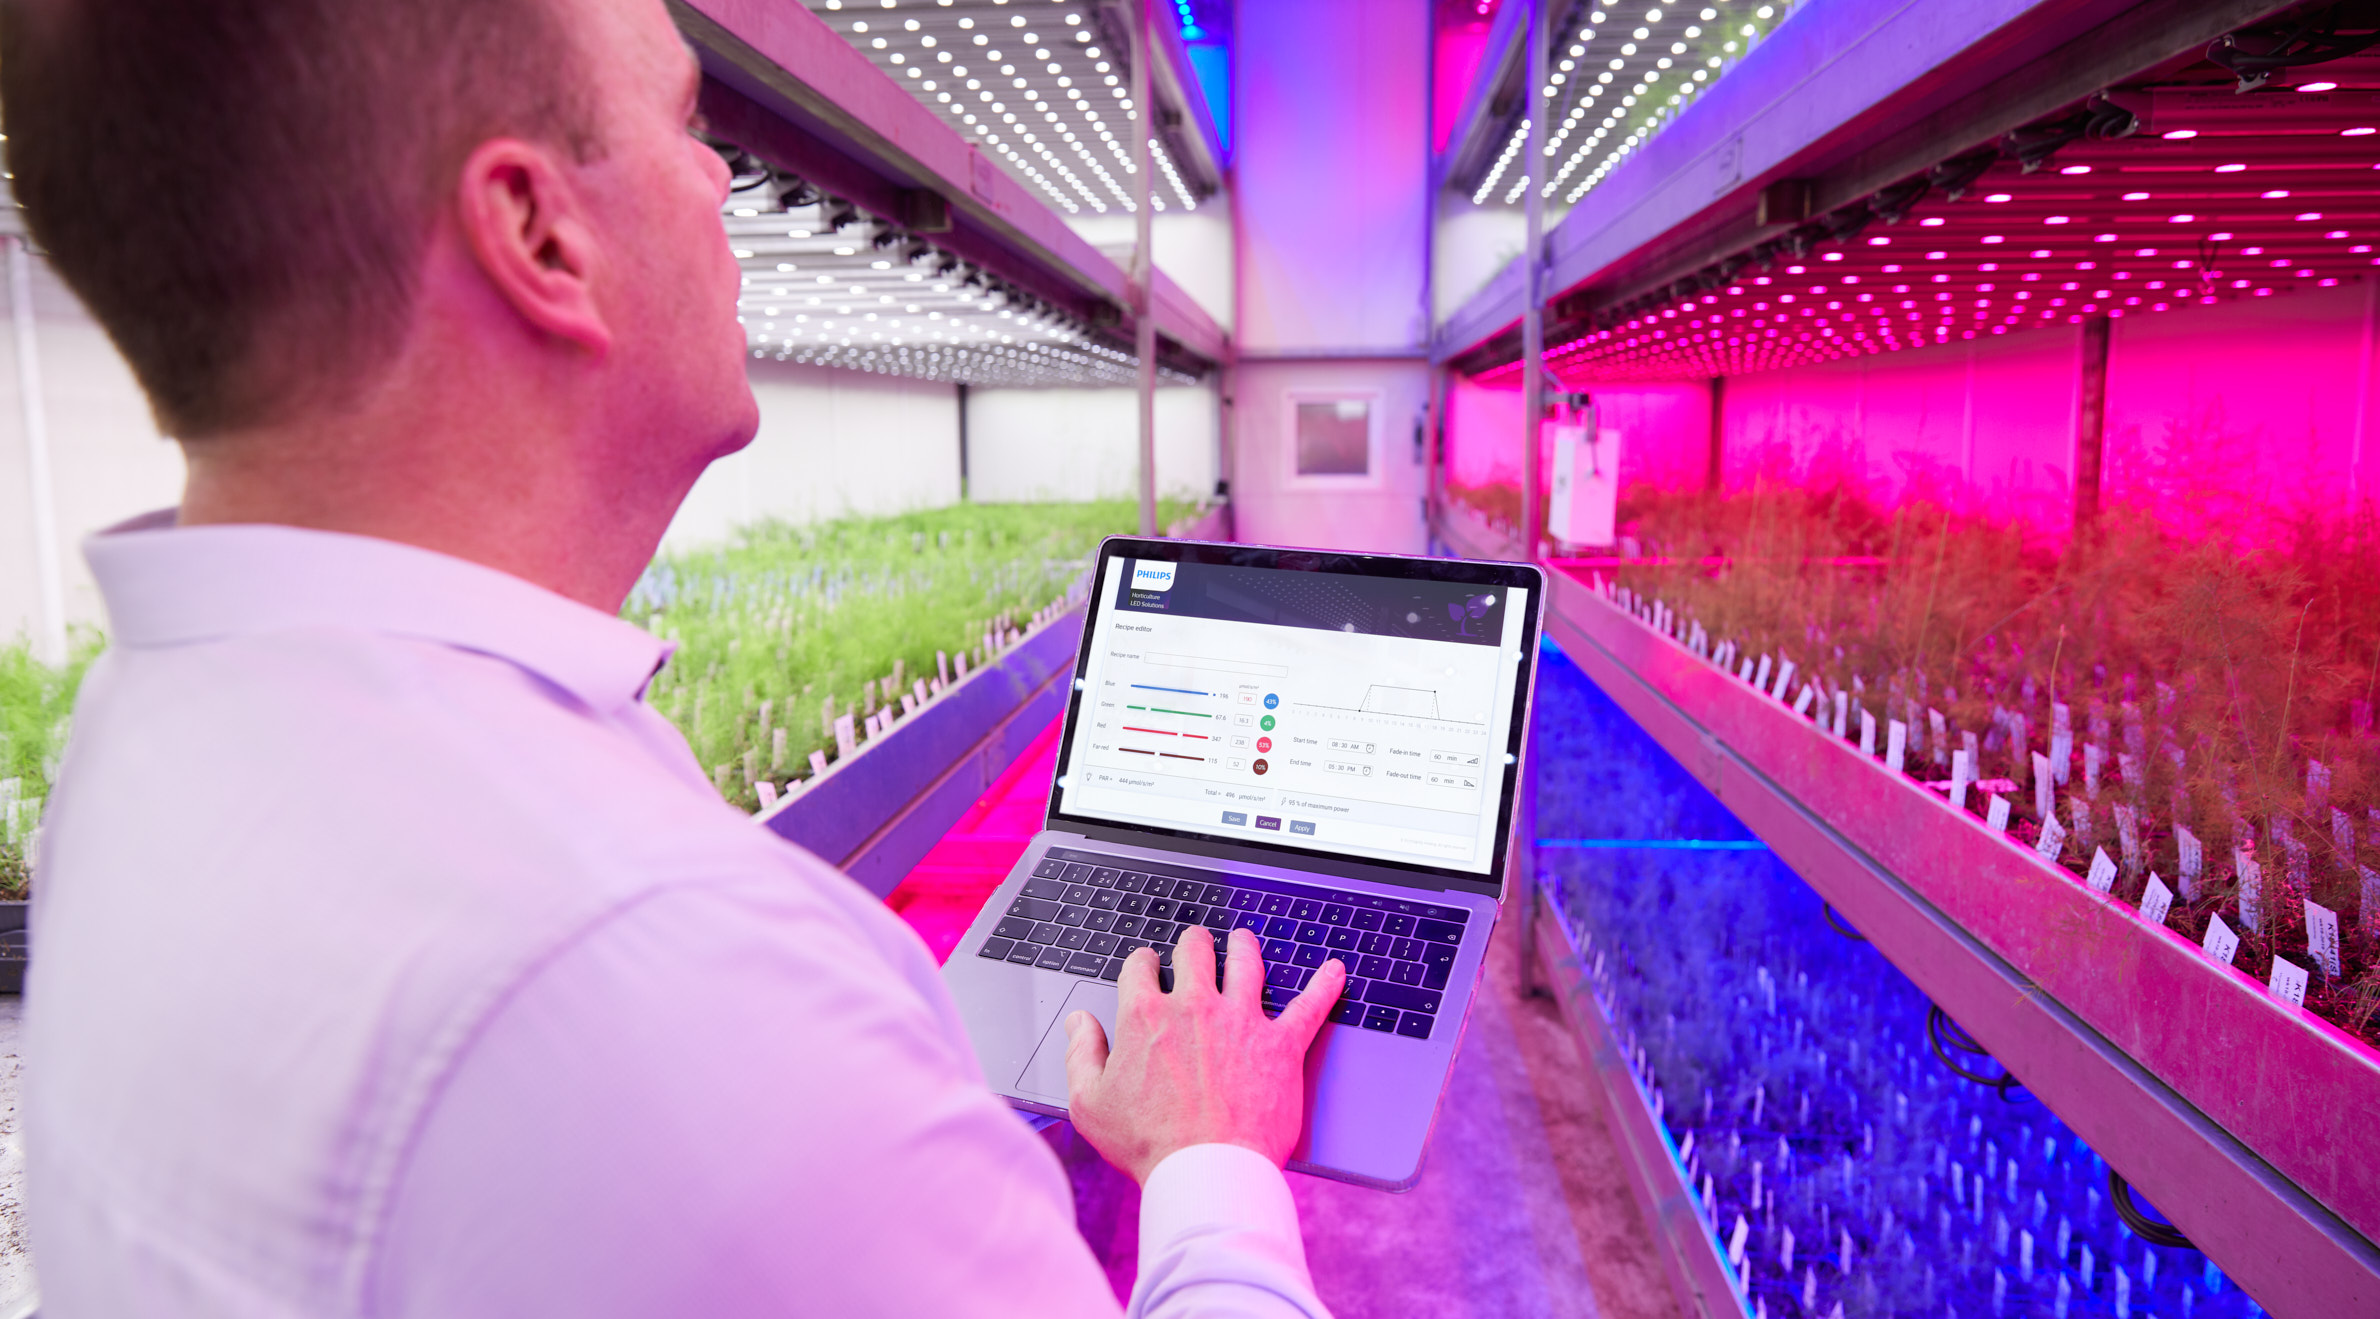 Seed innovator Bejo Zaden and Signify team up to accelerate breeding of more seed varieties with Philips GreenPower LED lighting